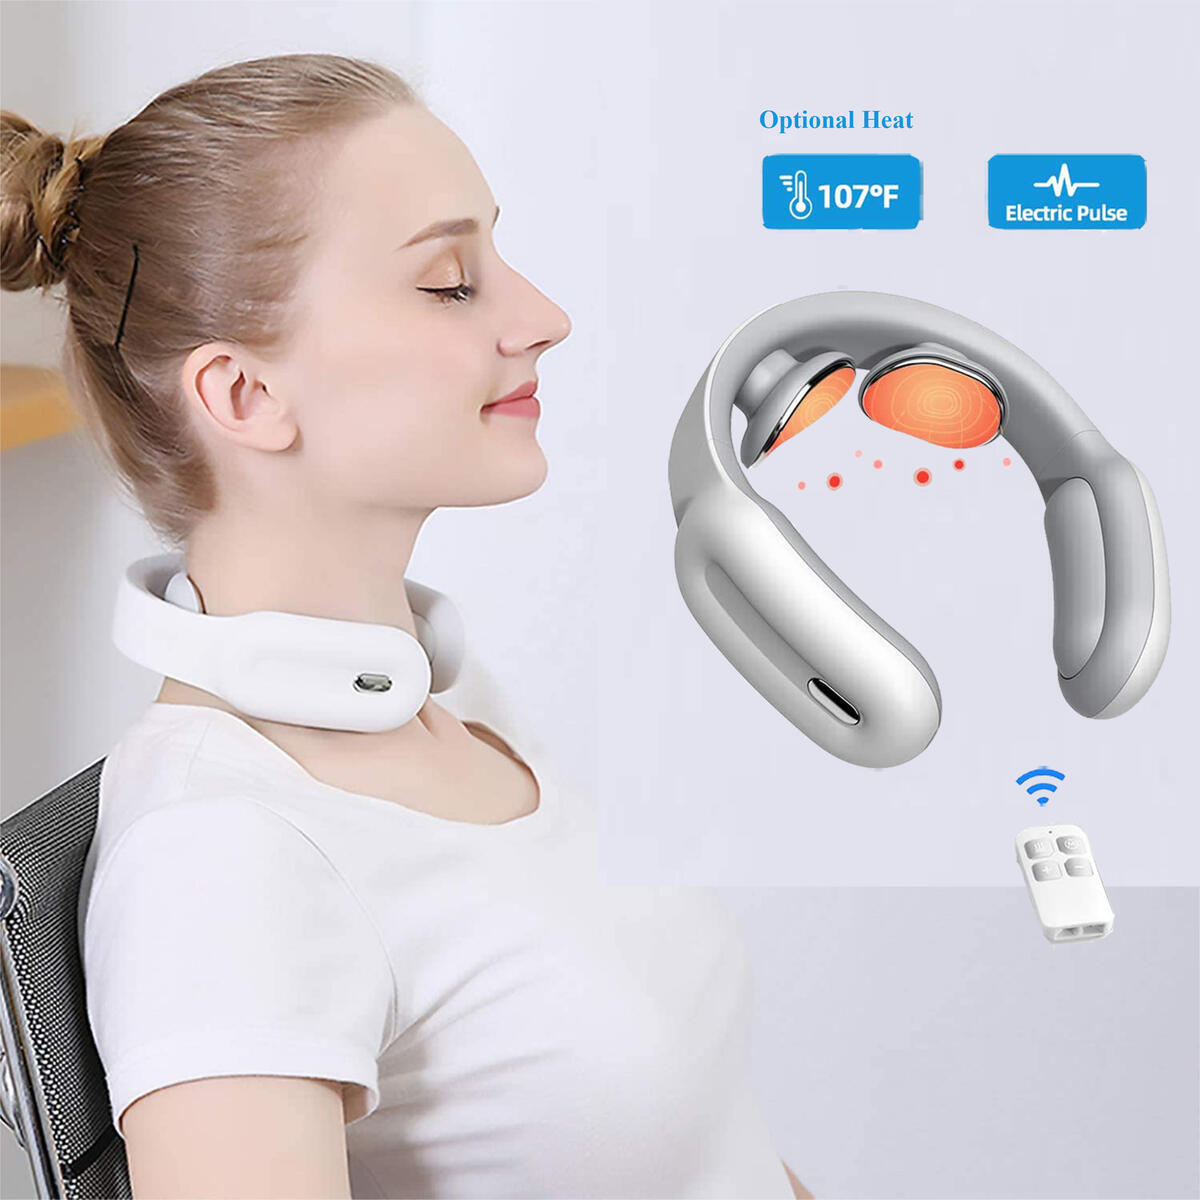 Intelligent Neck Massager with Heat - Deep Tissue Massager for Neck Pain Relief, 3 Modes 15 Speeds Ergonomic Handheld Massager, Electric Pulse Neck Massage for Women and Men